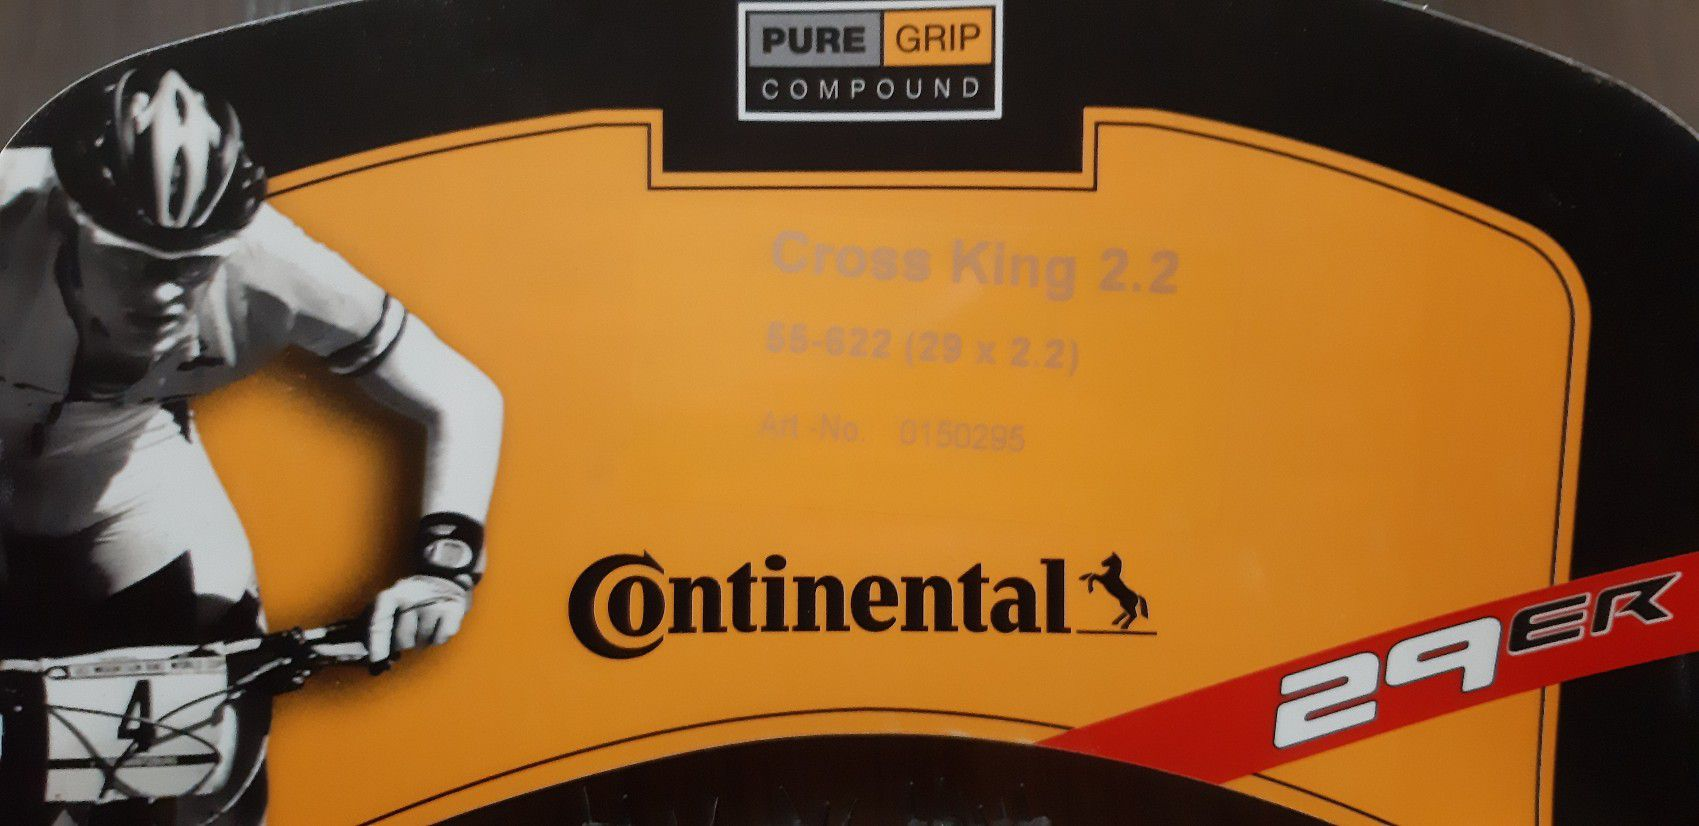 2 un. Pneus CONTINENTAL 29 x 2.2 Cross King Performance 2.2 Kevlar